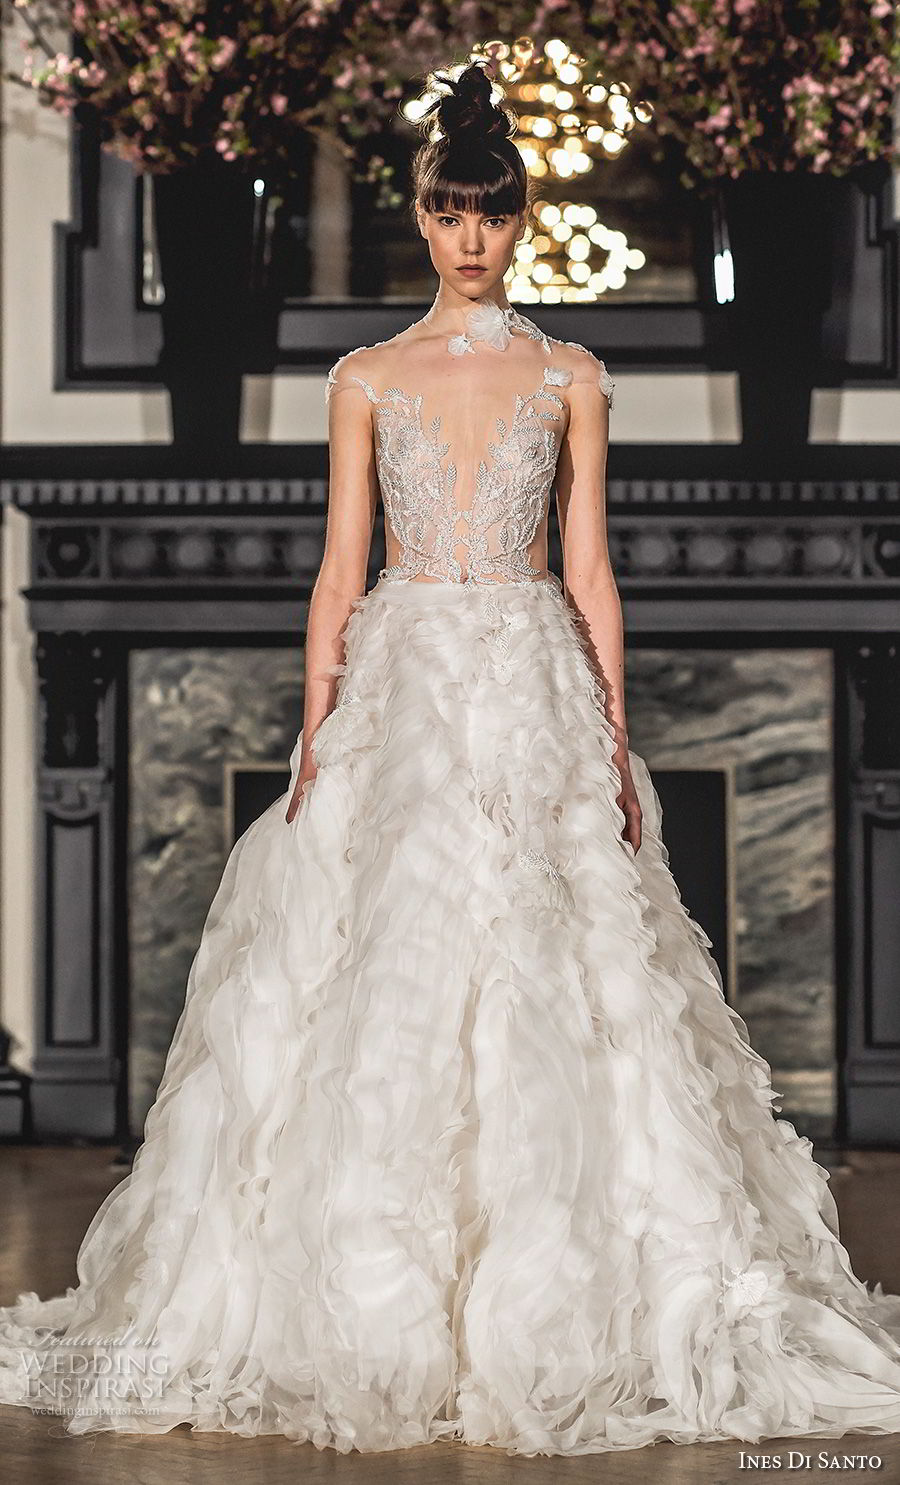 ines di santo spring 2019 bridal cap sleeves illusion high neck heavily embellished bodice ruffled skirt romantic glamorous a line wedding dress (5) mv